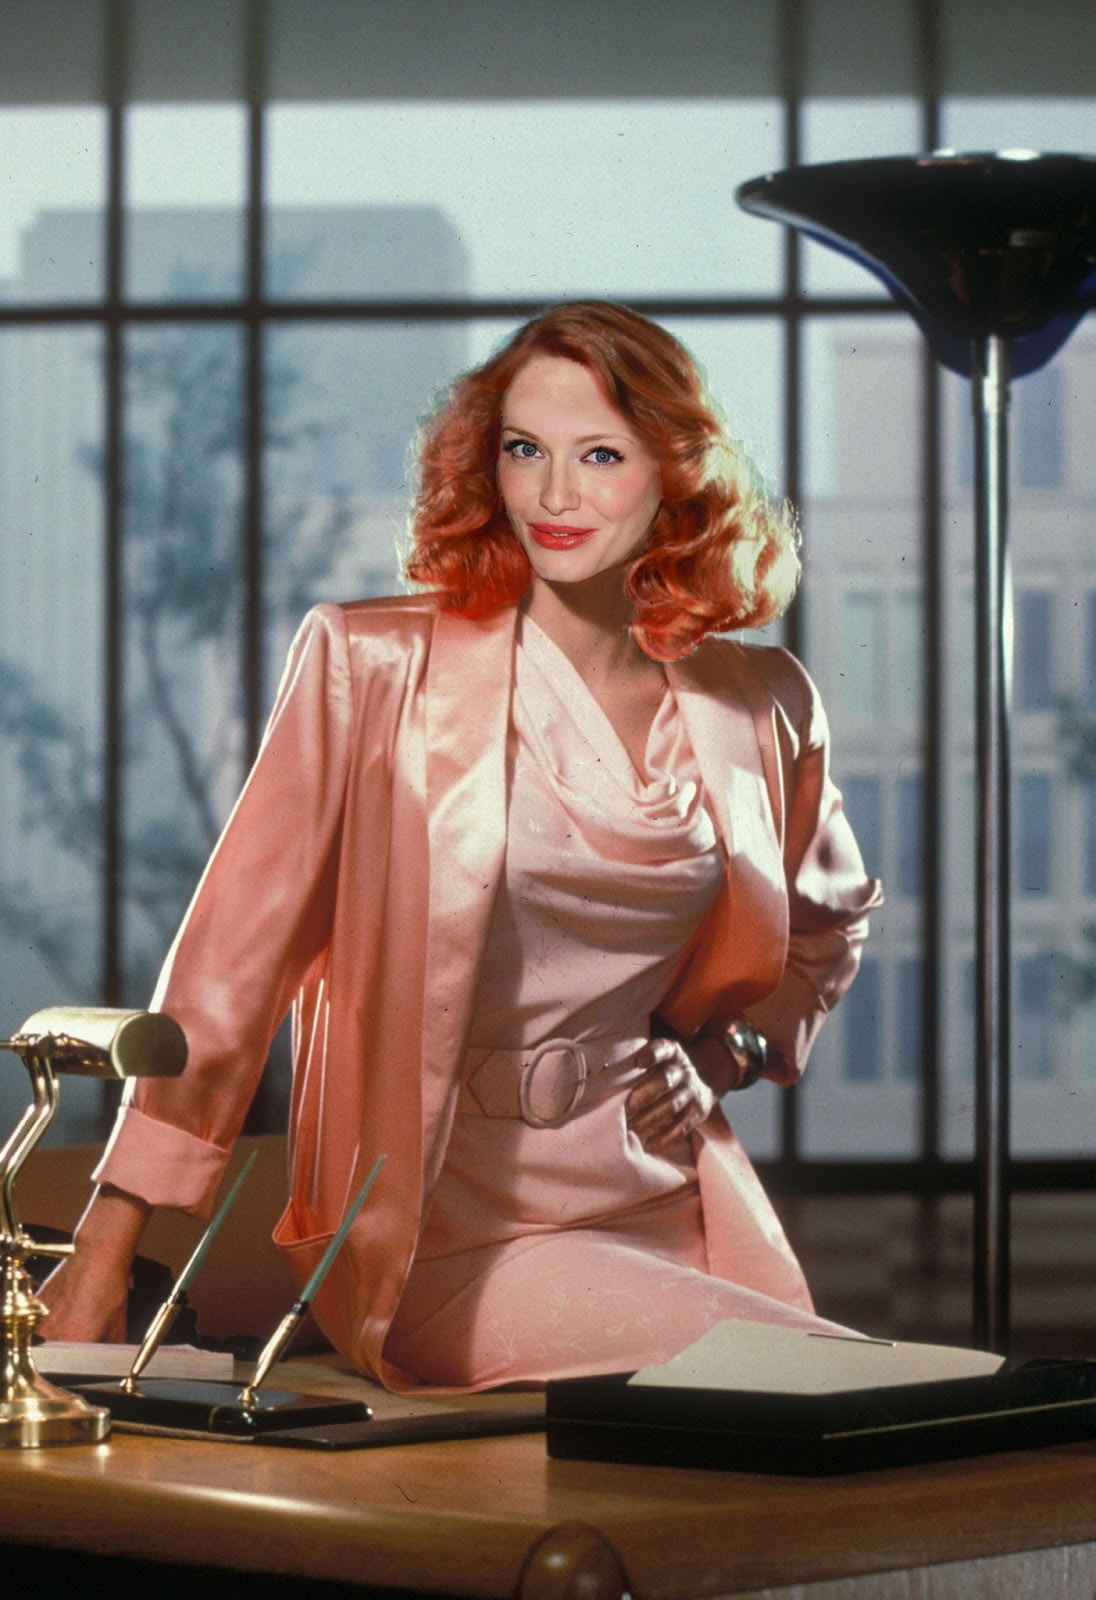 The 80s Fashion Trends That Are Back Today: What Will The Mad Men Characters Be Wearing In The 80s